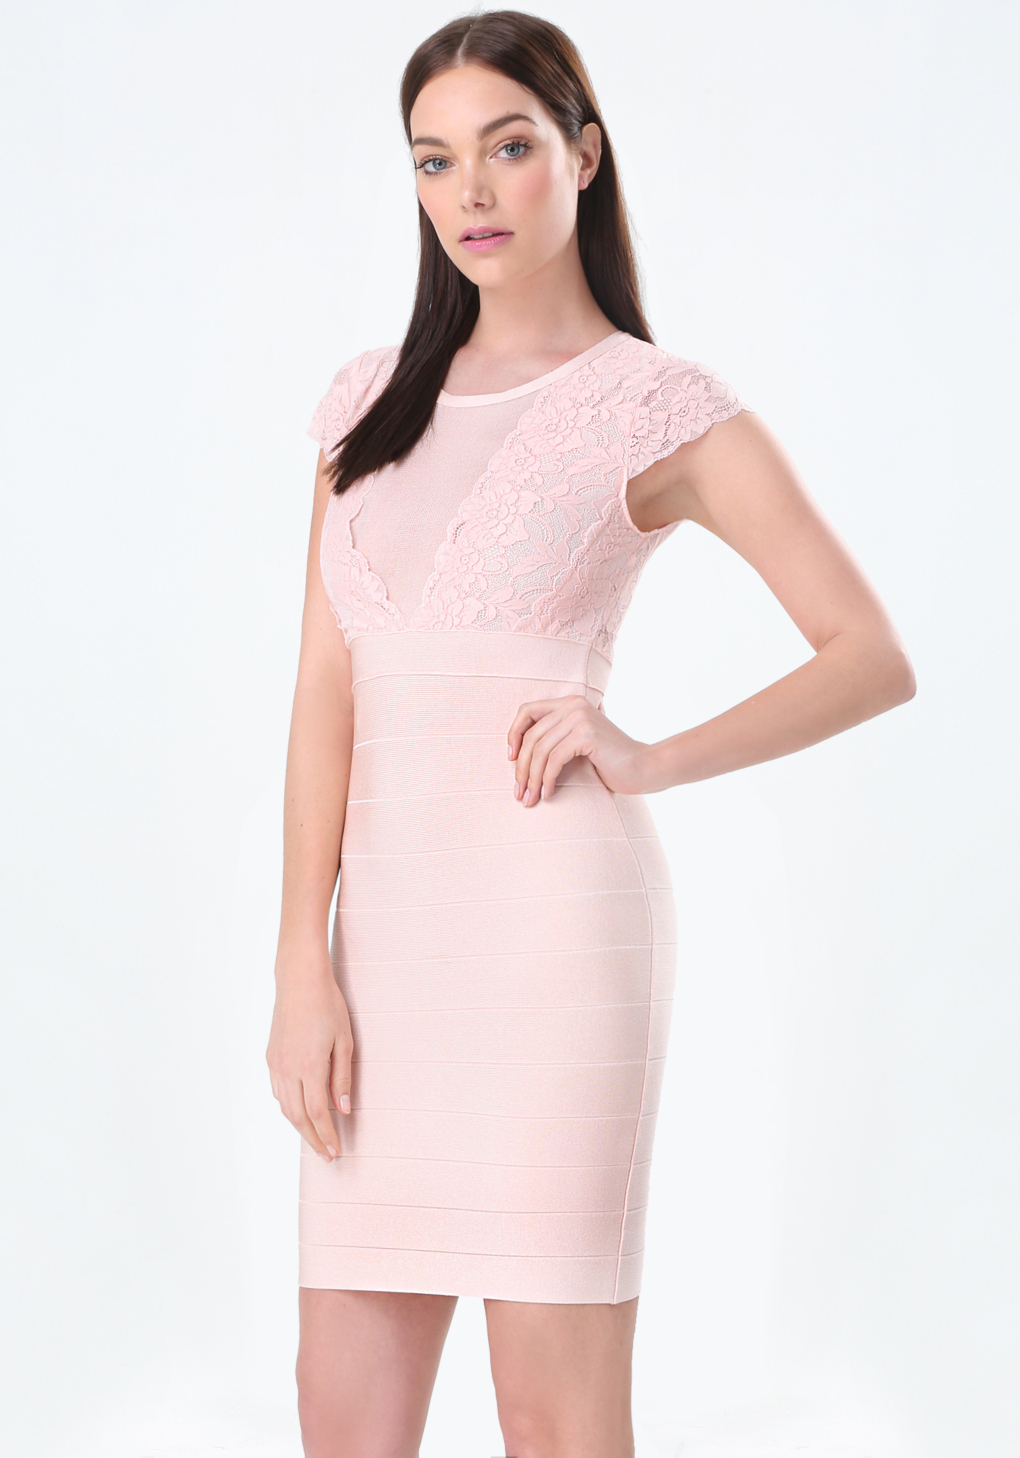 Bebe Scallop Lace Bandage Dress In Pink Lyst